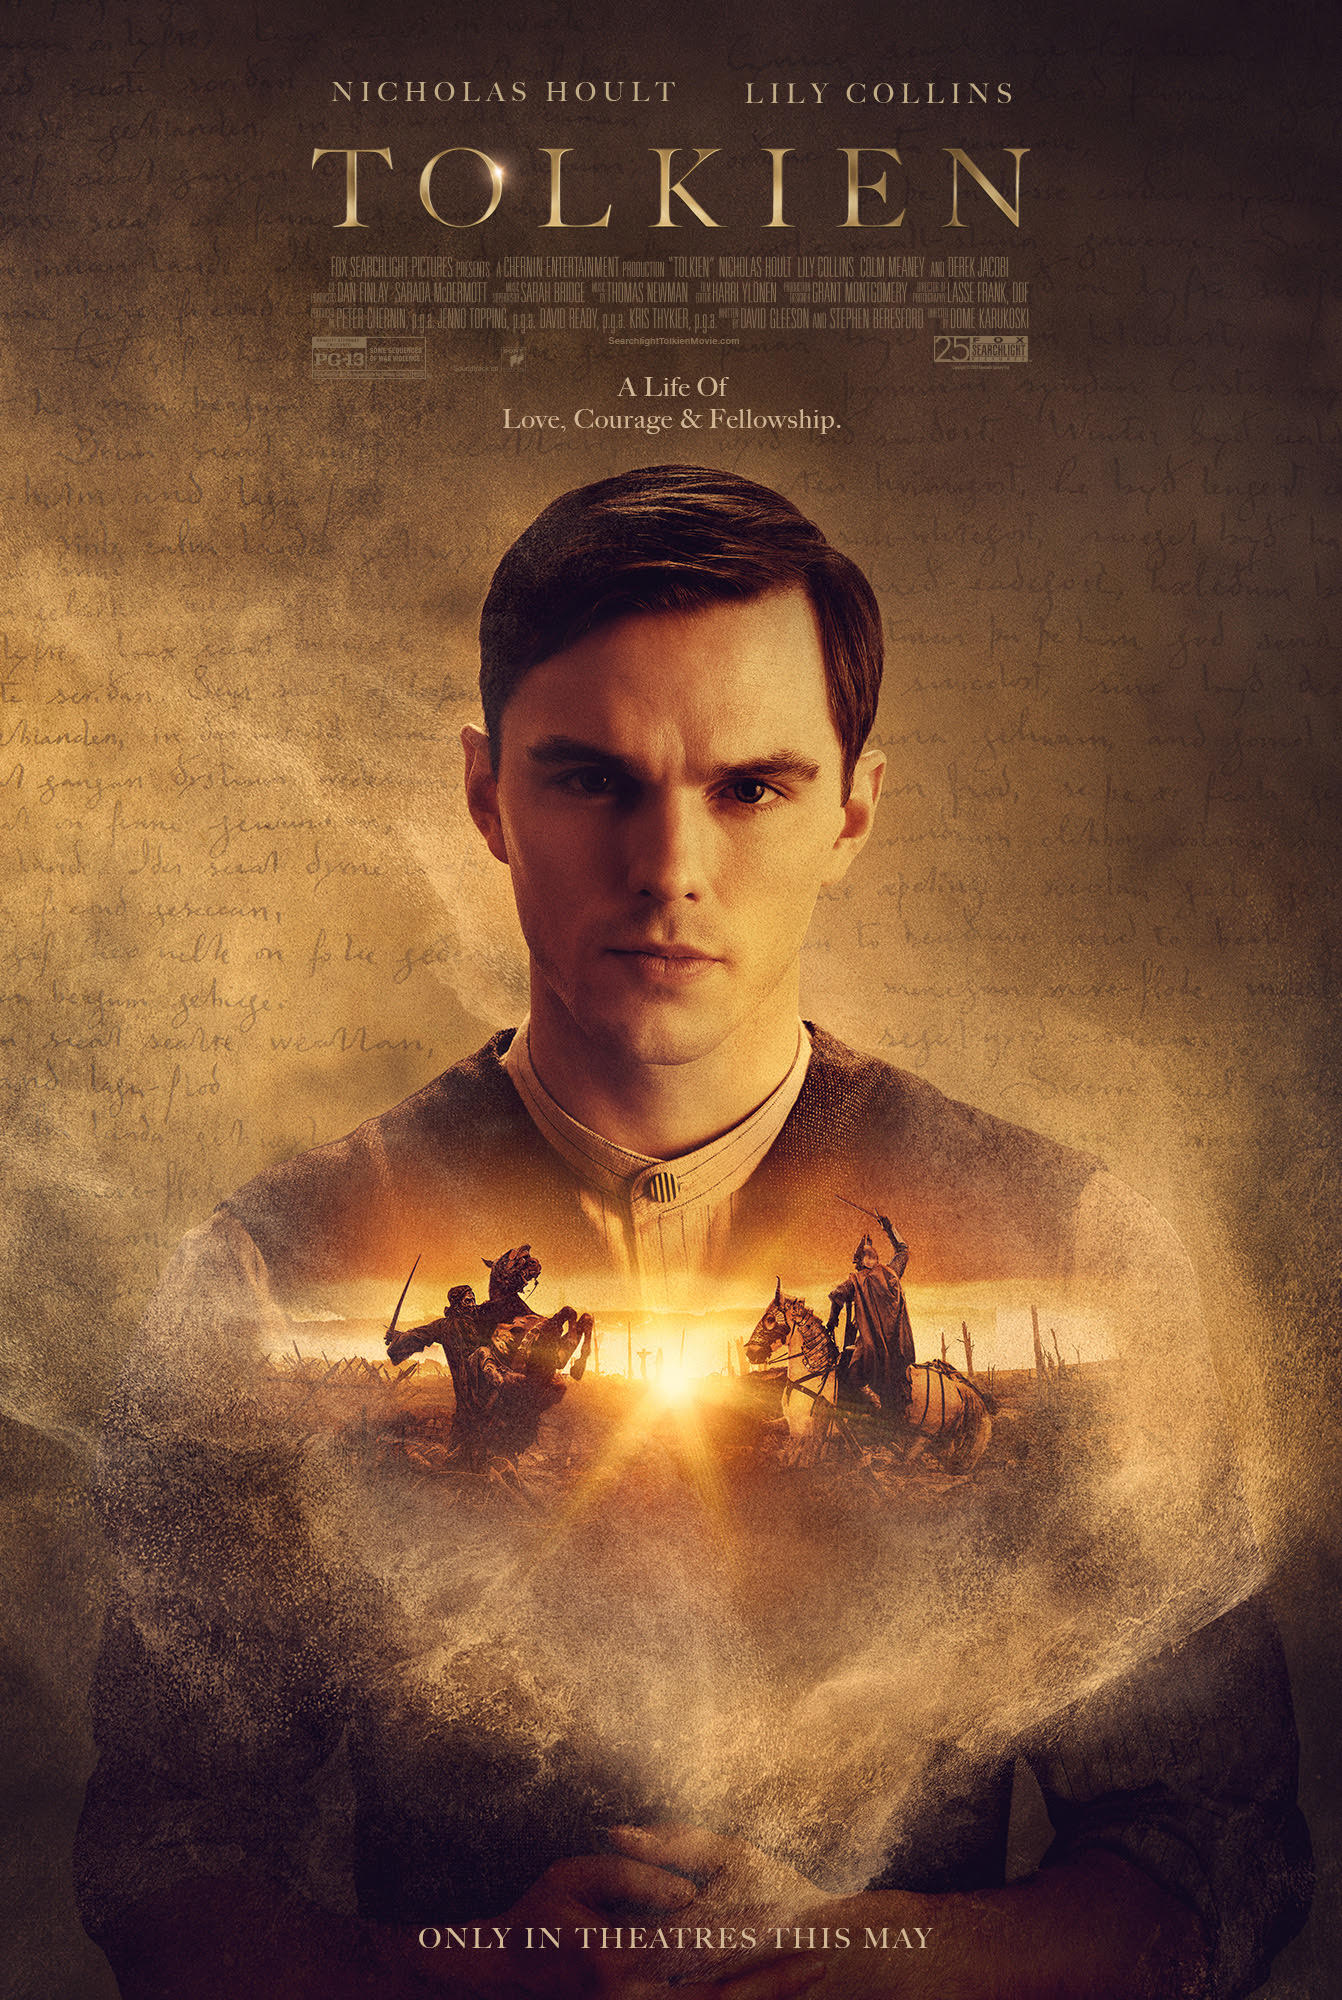 Image result for Tolkien movie poster